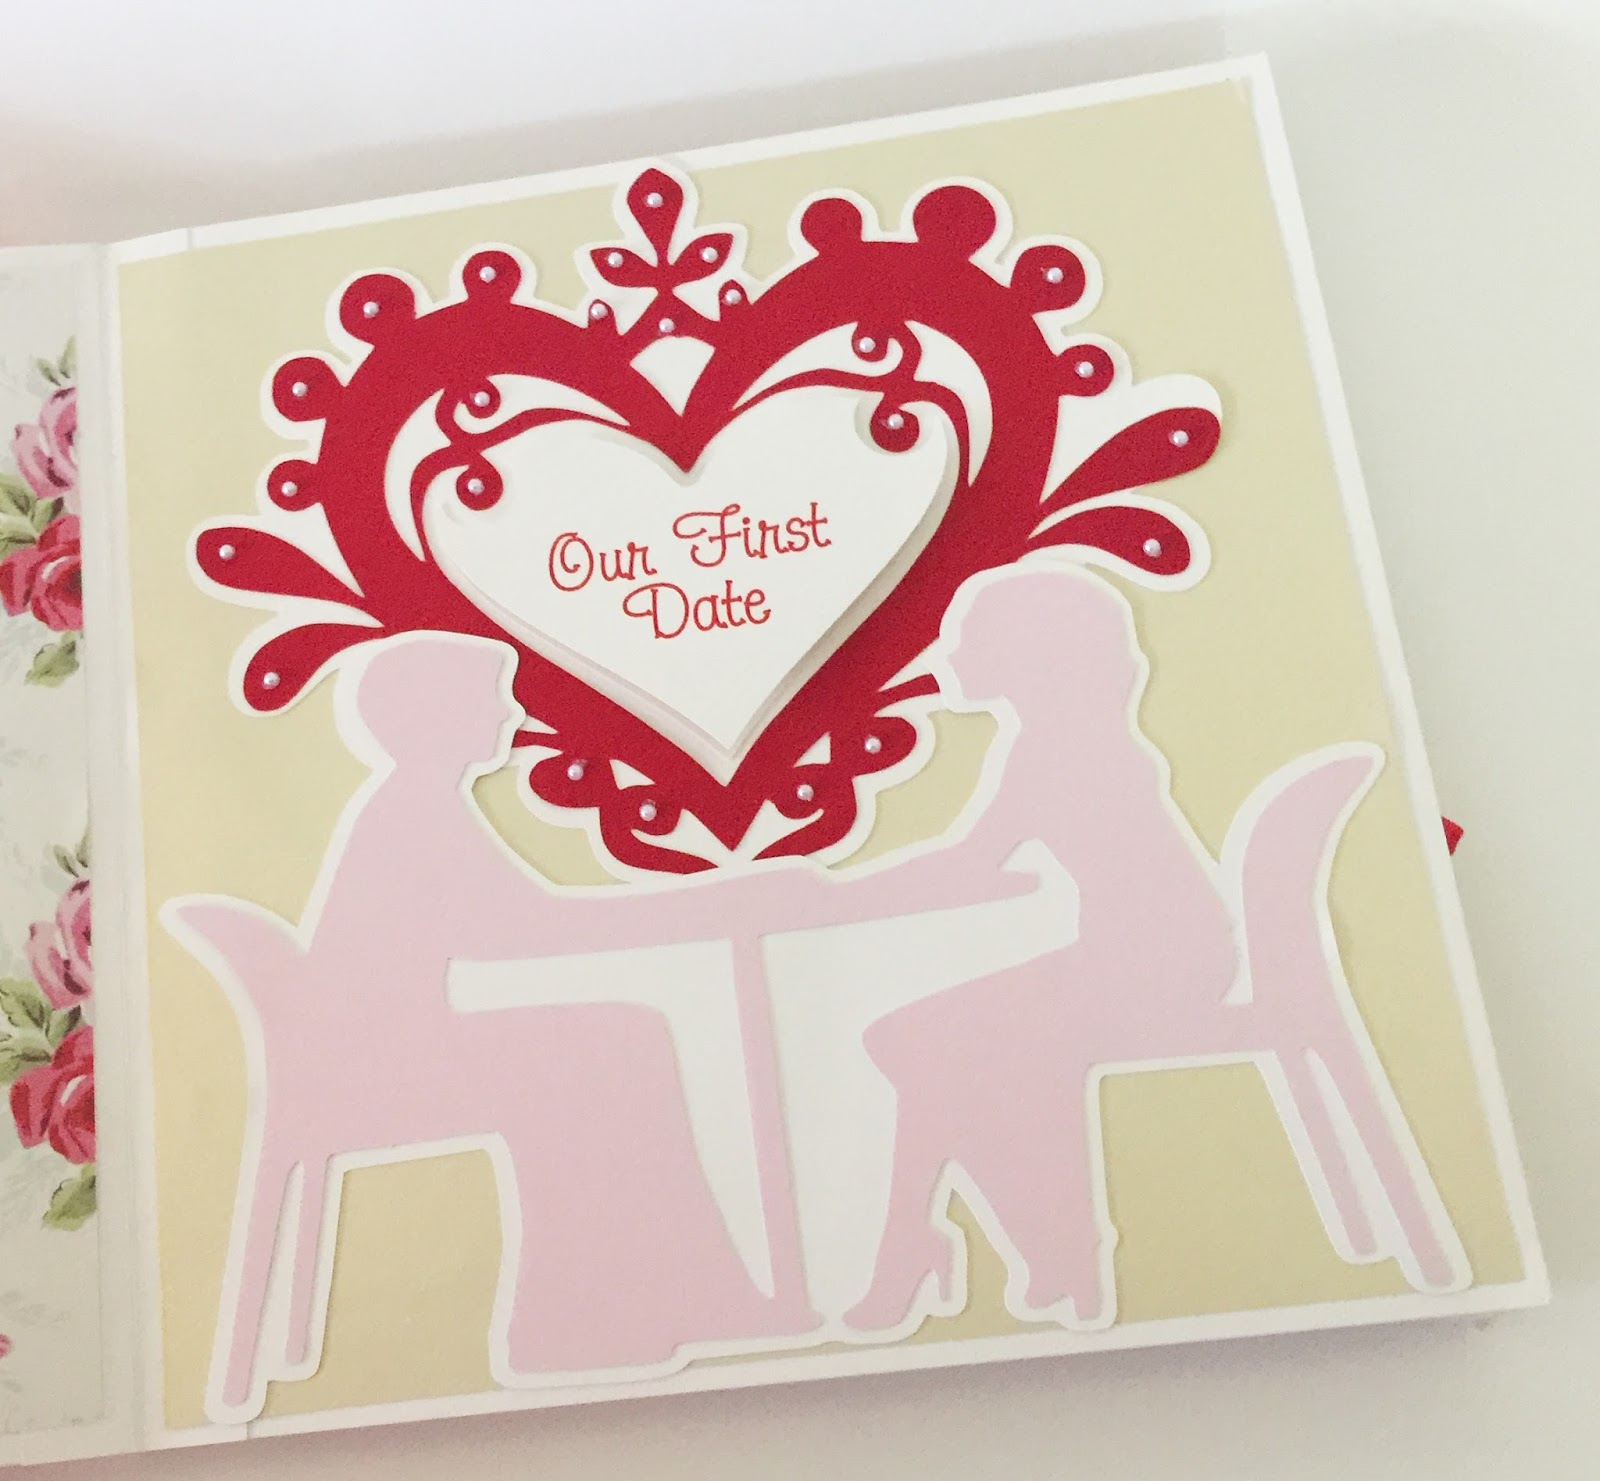 Scrap book meaning - We Have Received Requests To Make The Our Love Story Scrapbook As A Wedding Gift Or Anniversary Gift By Well Meaning Friends Or